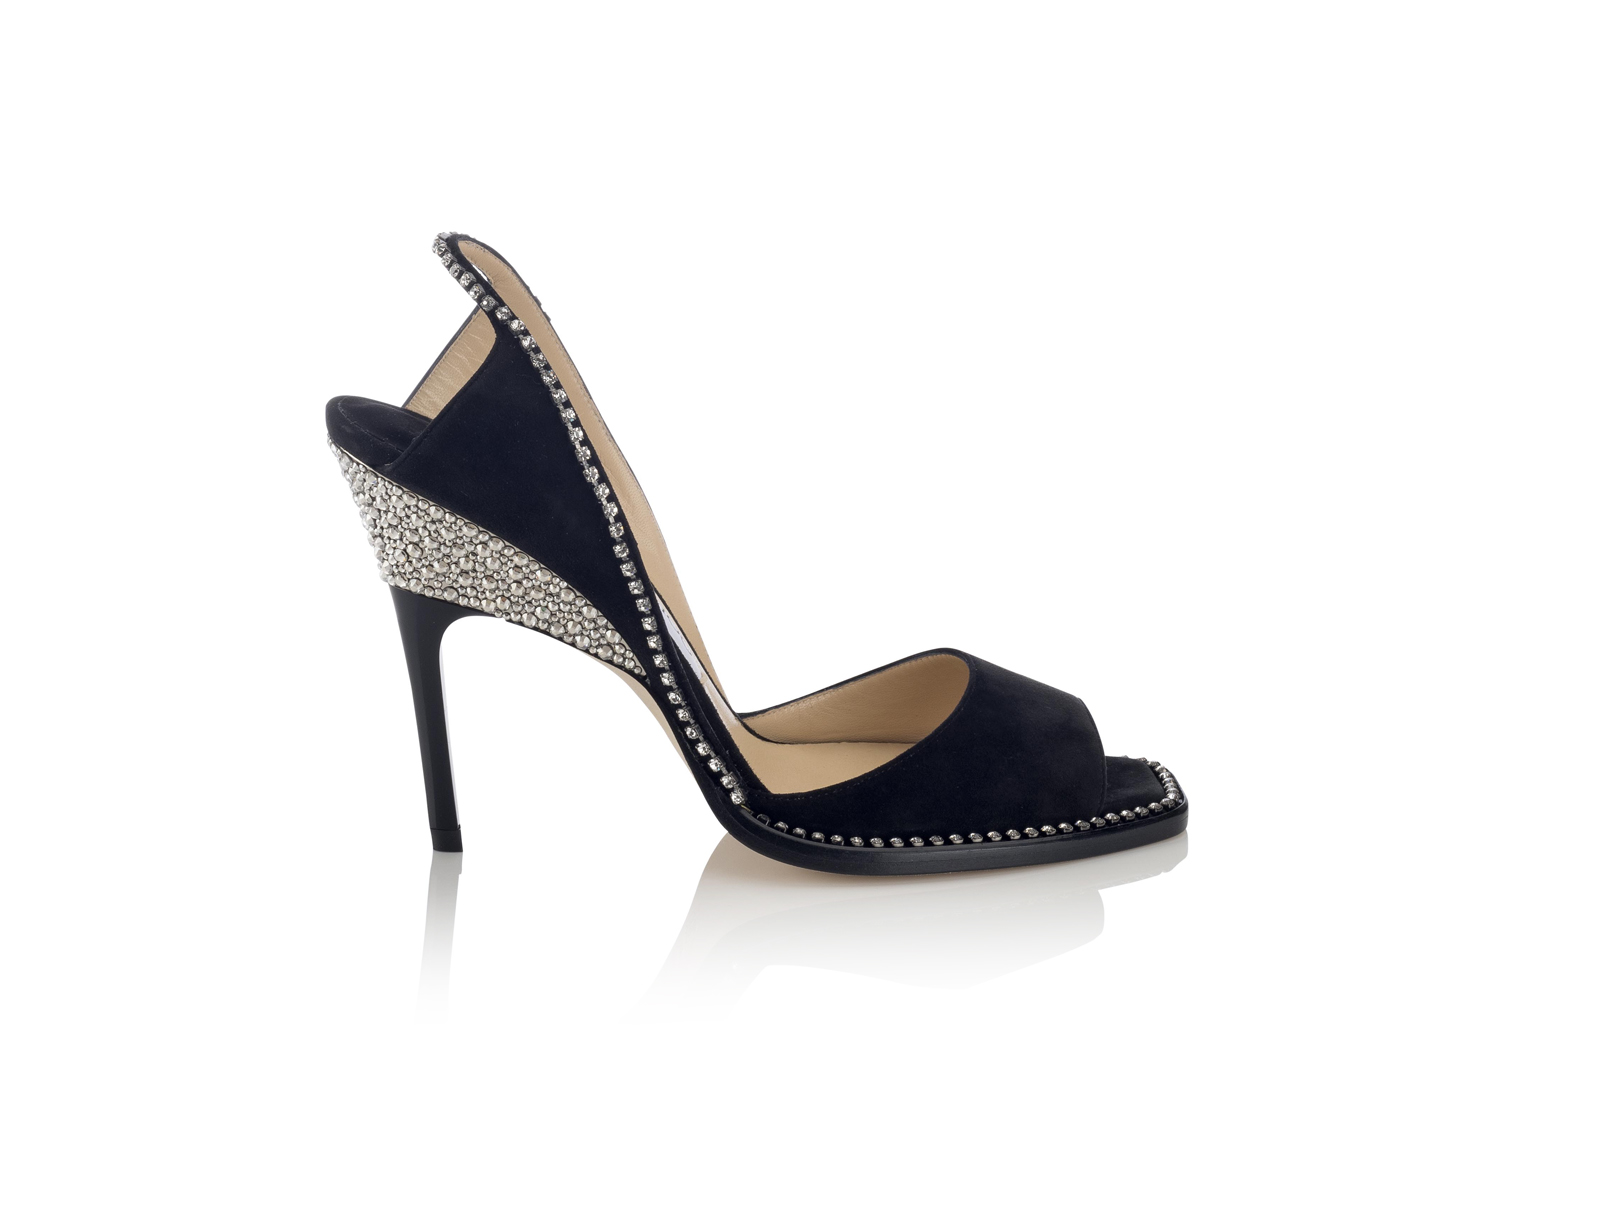 Bel, crafted with crystals and wedge-stiletto heels